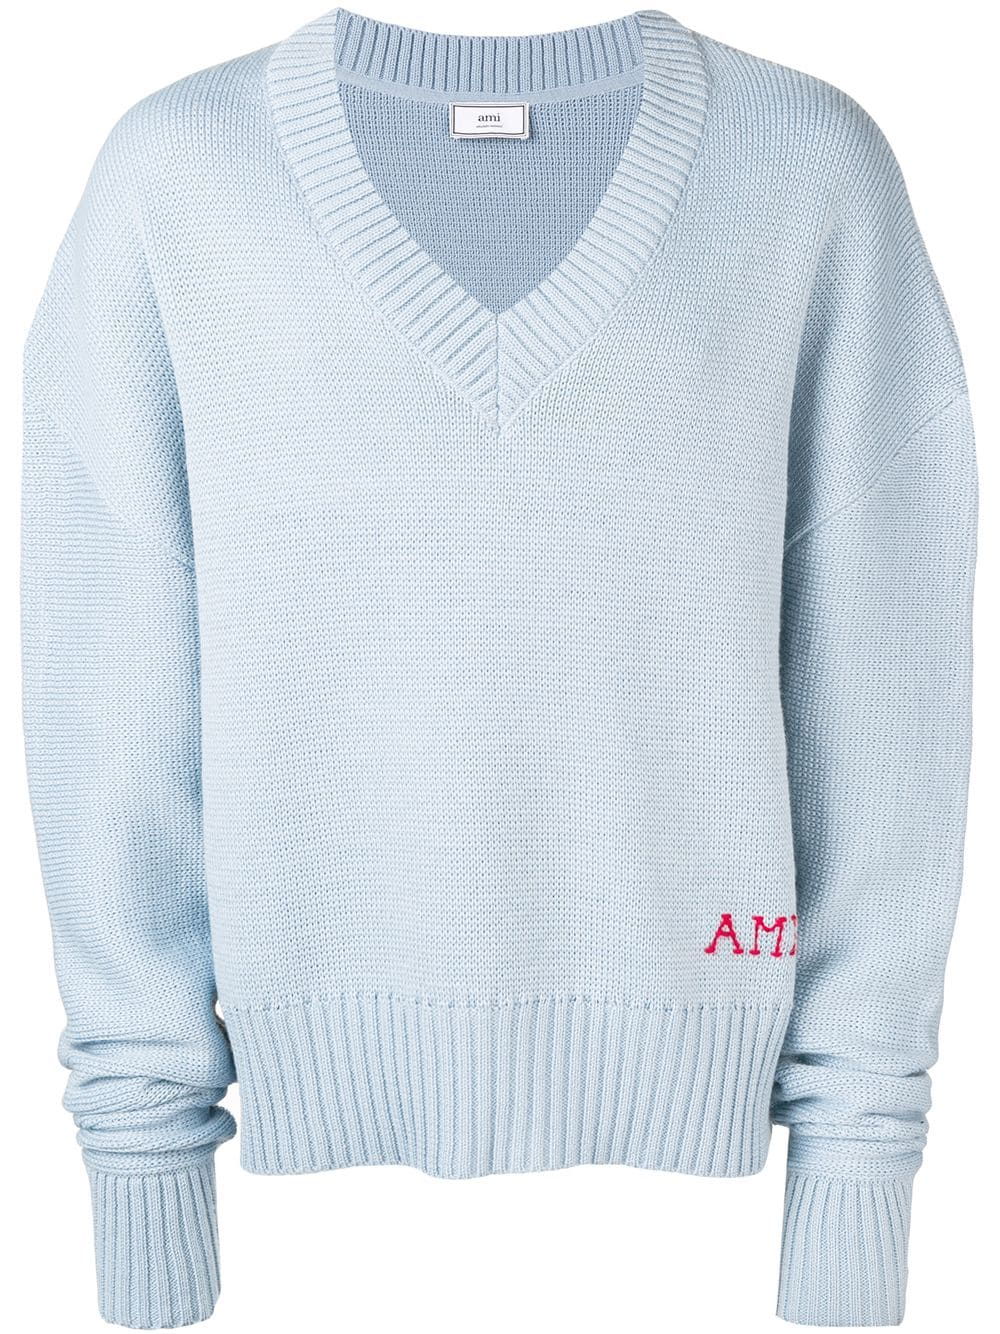 Ami Embroidery Oversize Sweater In 459 Bleu Cl Sweaters Oversized Sweaters Oversized Pullover